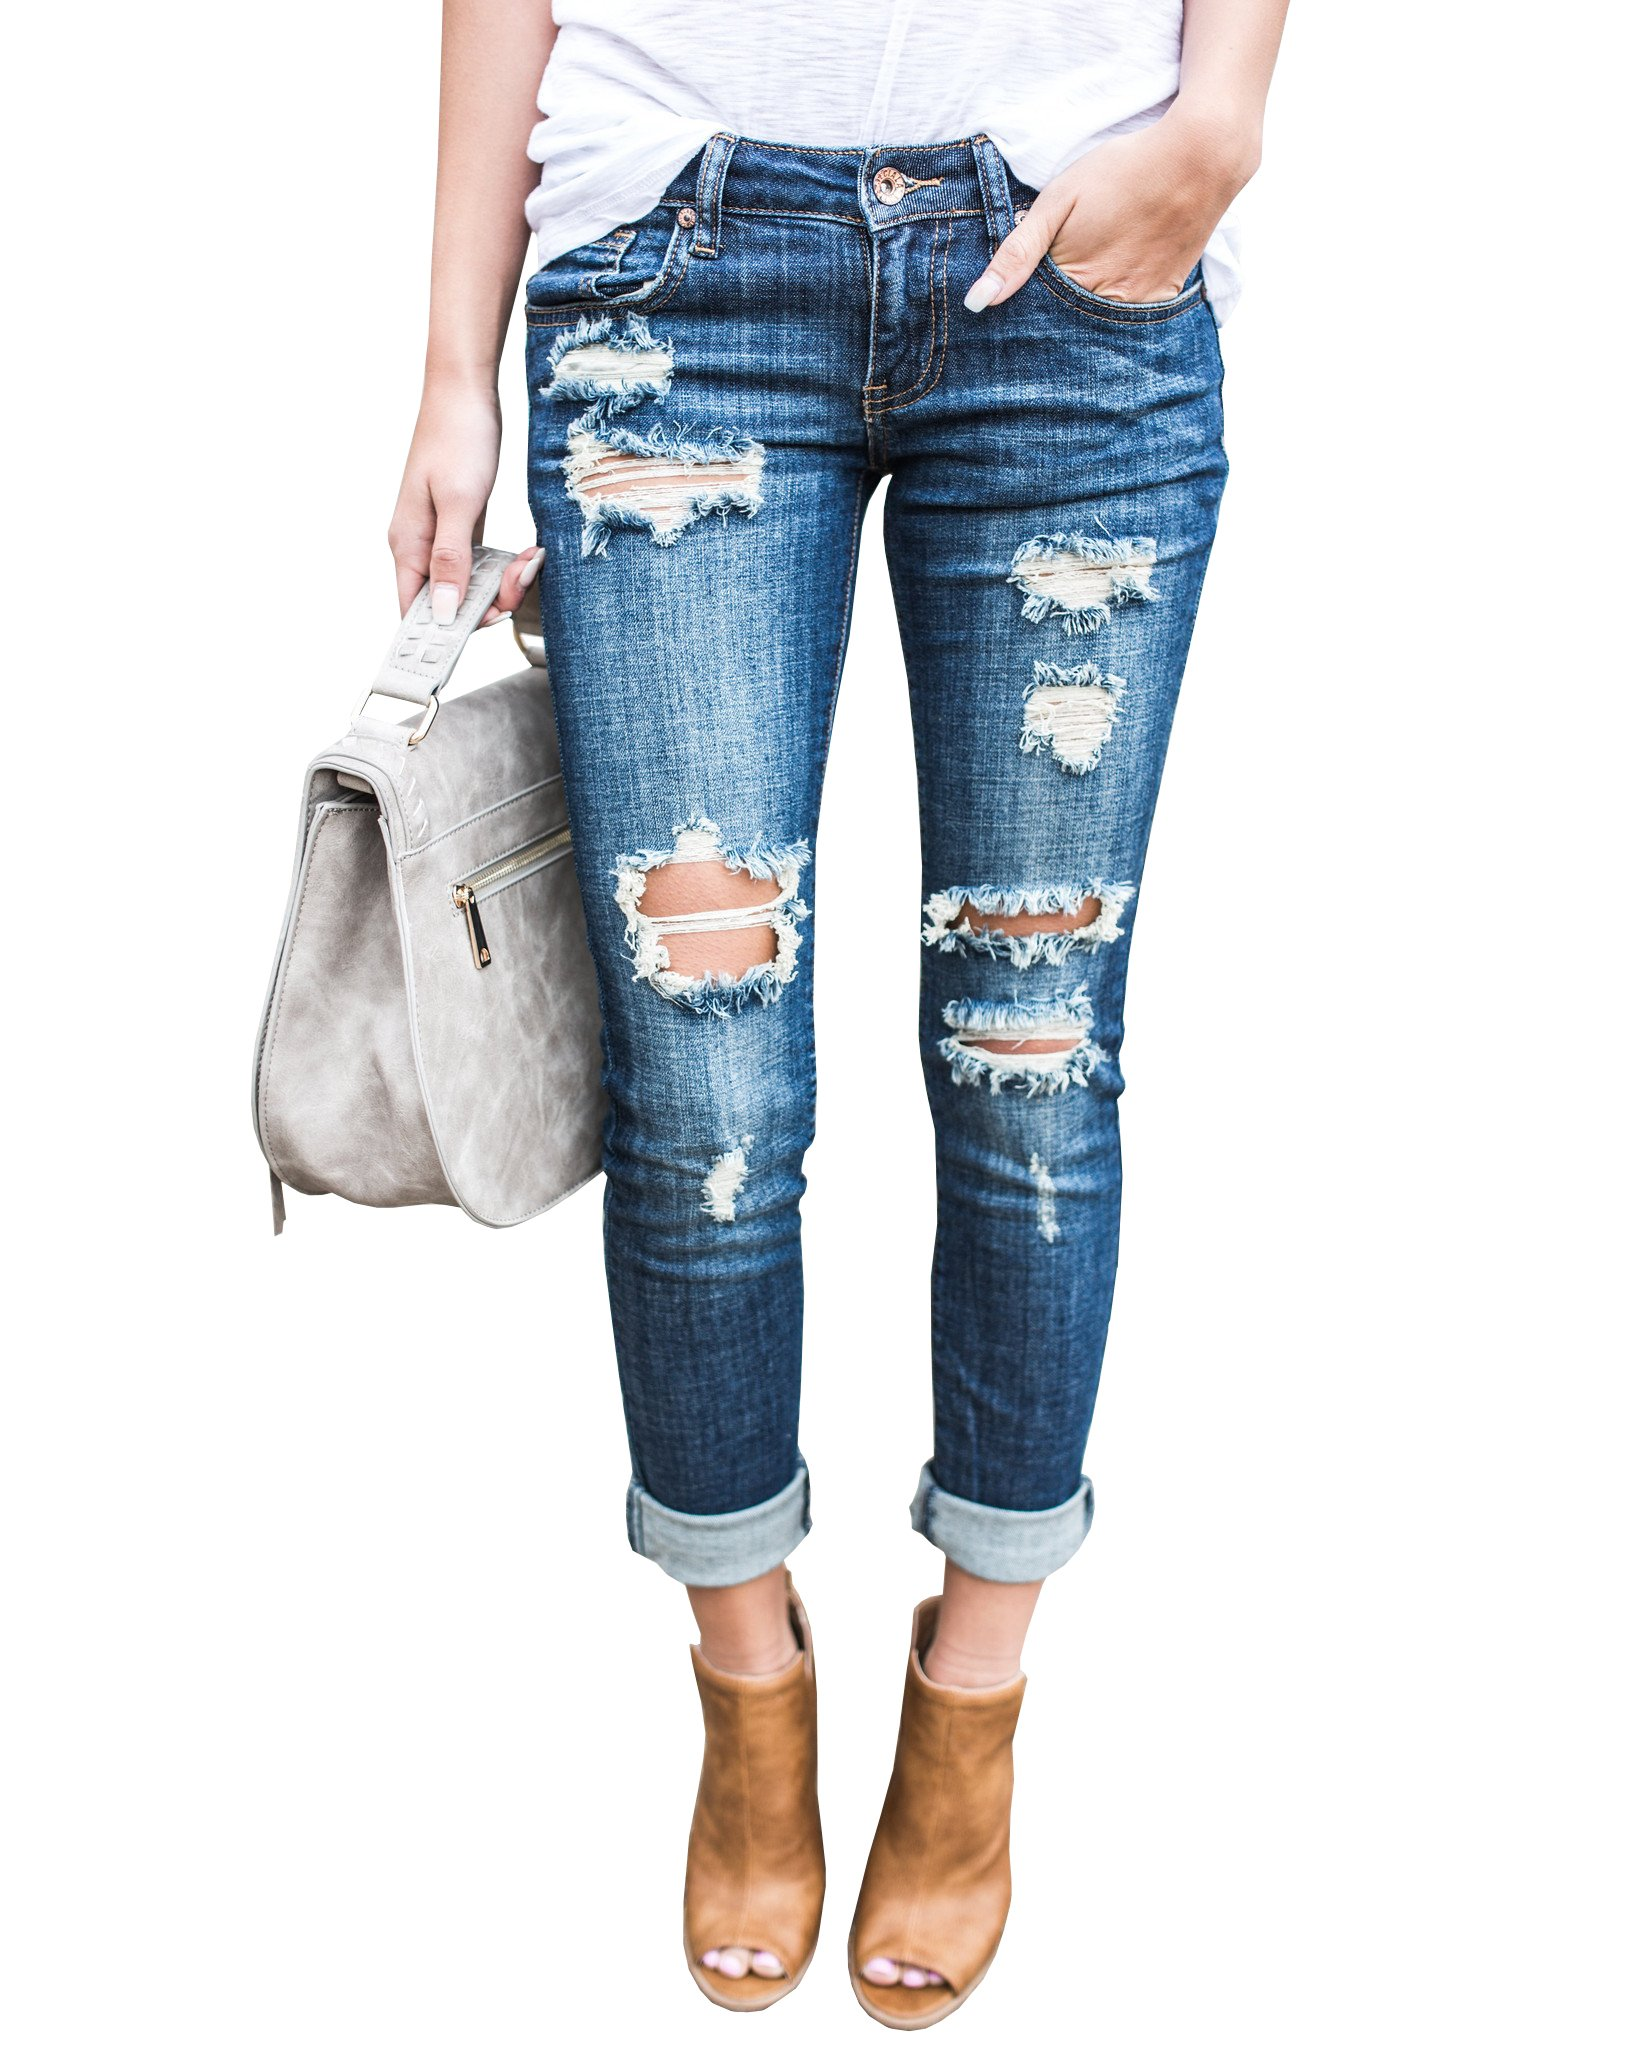 Misassy Womens Juniors Distressed Ripped Destroyed Jeans Skinny Moto Leggings with Frayed Hem by Misassy